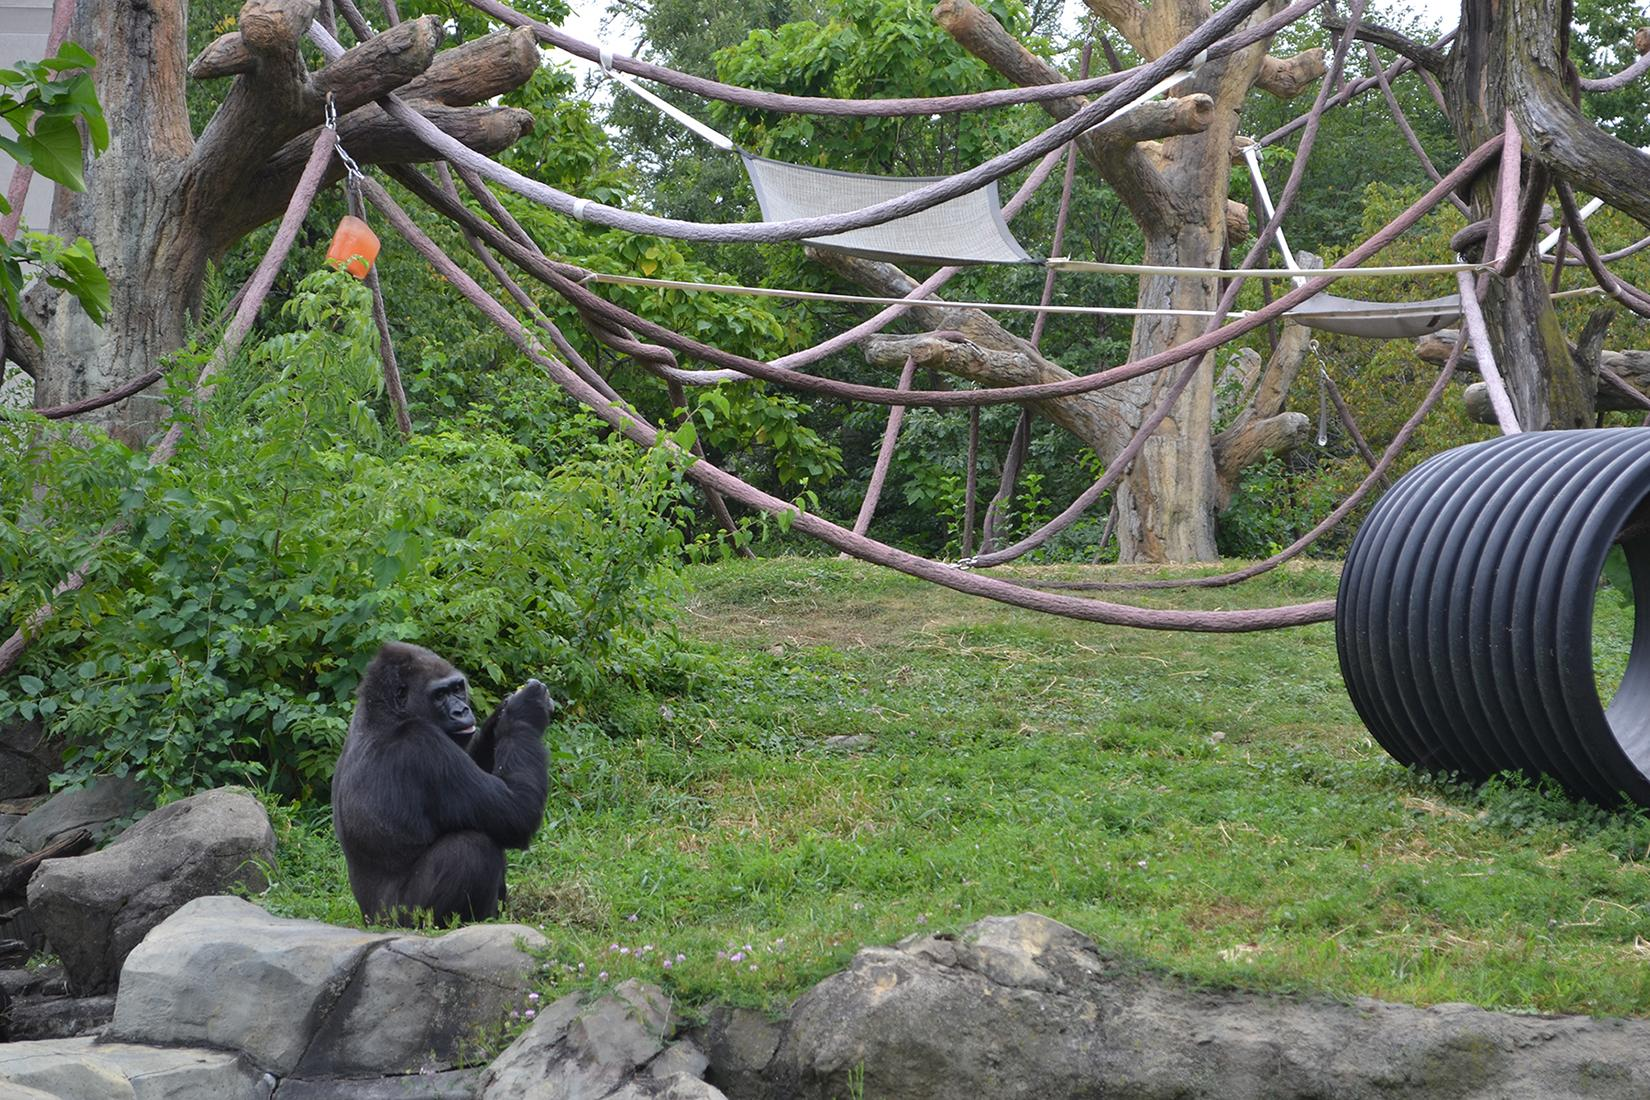 Gorillas were among the animals monitored by scientists at Lincoln Park Zoo during Monday's solar eclipse. (Alex Ruppenthal / Chicago Tonight)